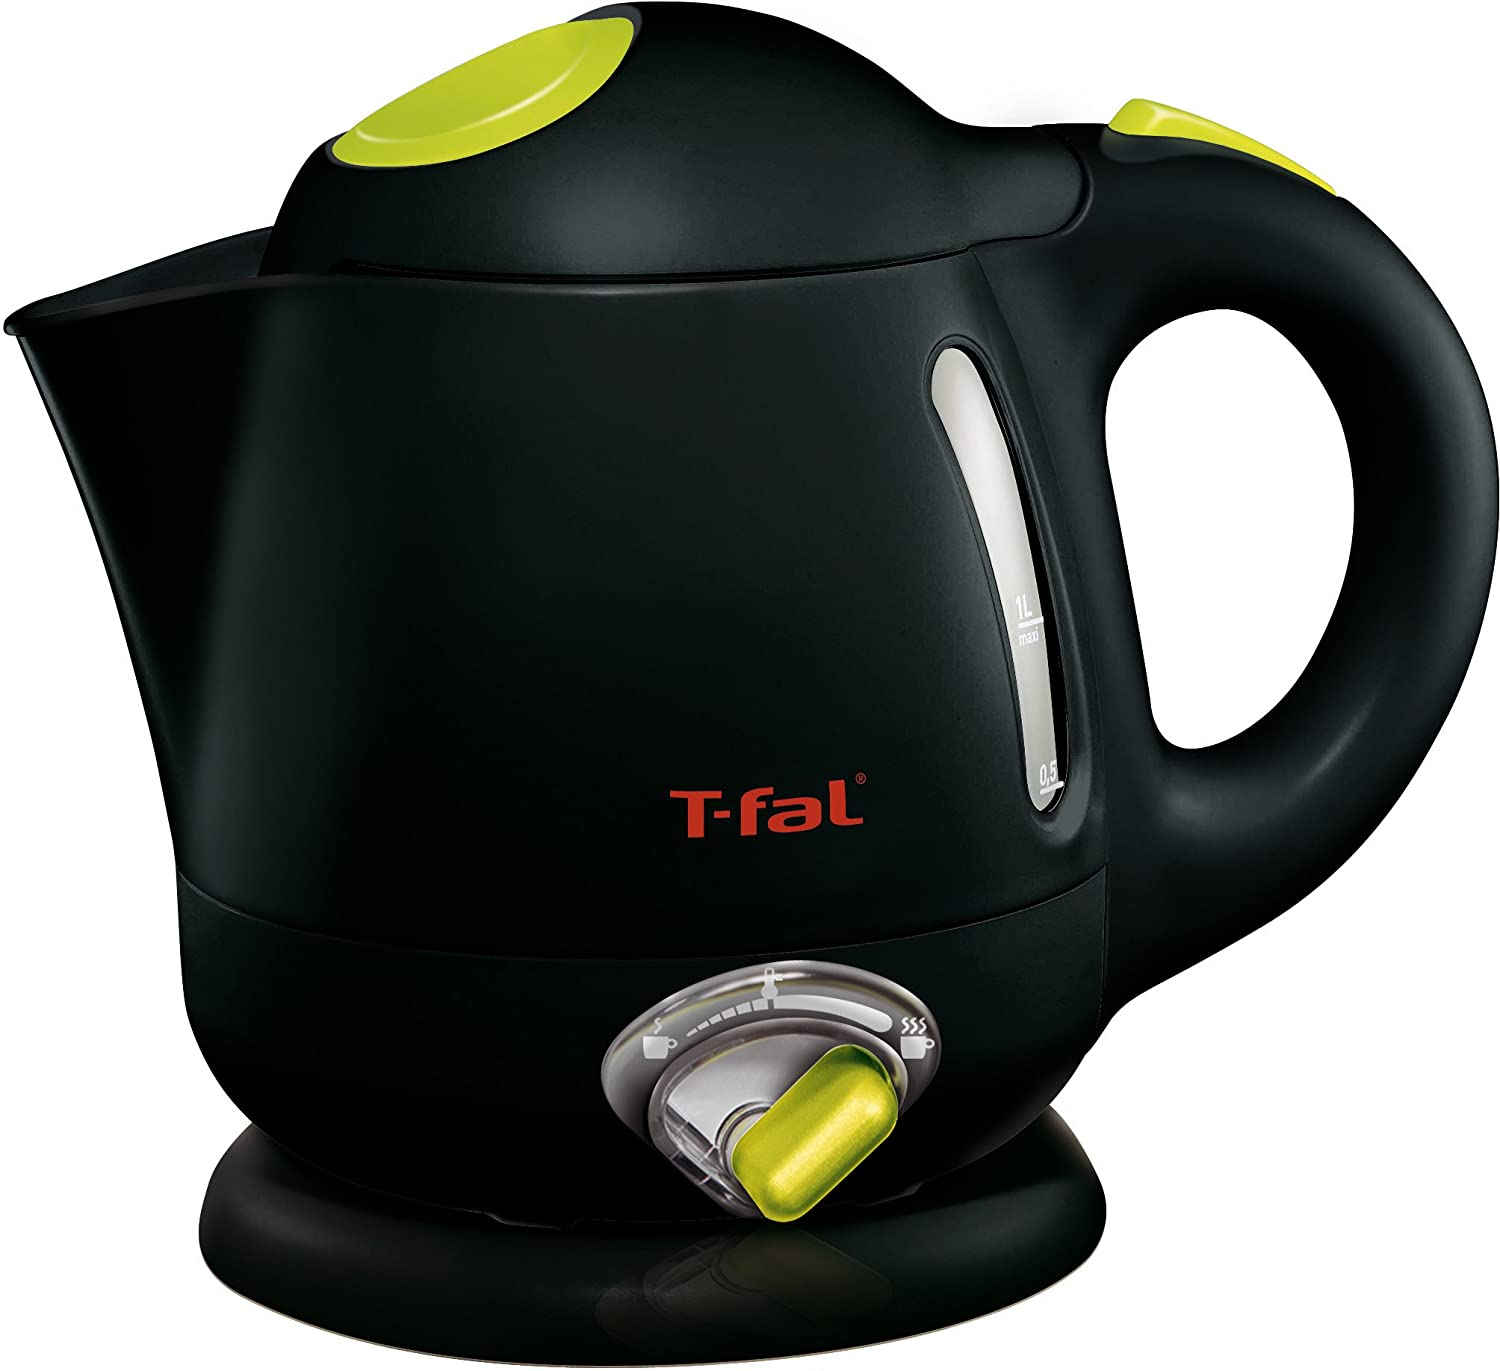 T-fal BF6138US 1-Liter Electric Mini Kettle with Variable Temperature